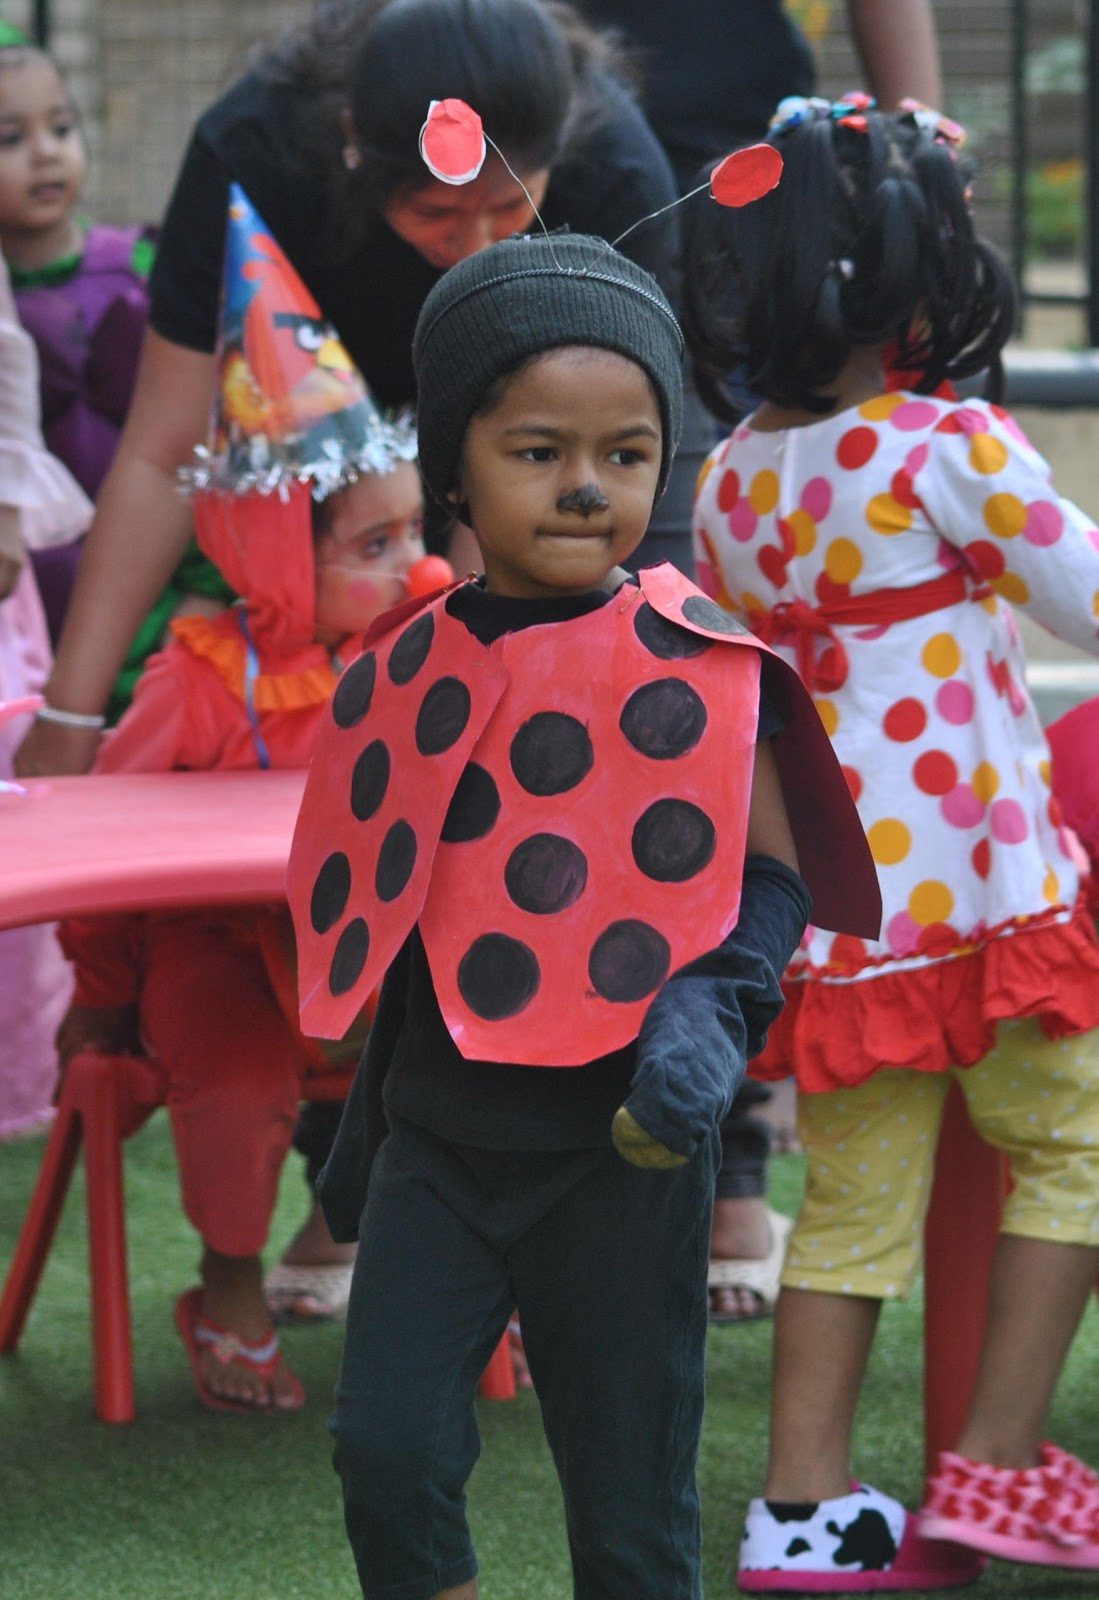 Best ideas about DIY Bug Costume . Save or Pin DIY Lady bug costume Now.